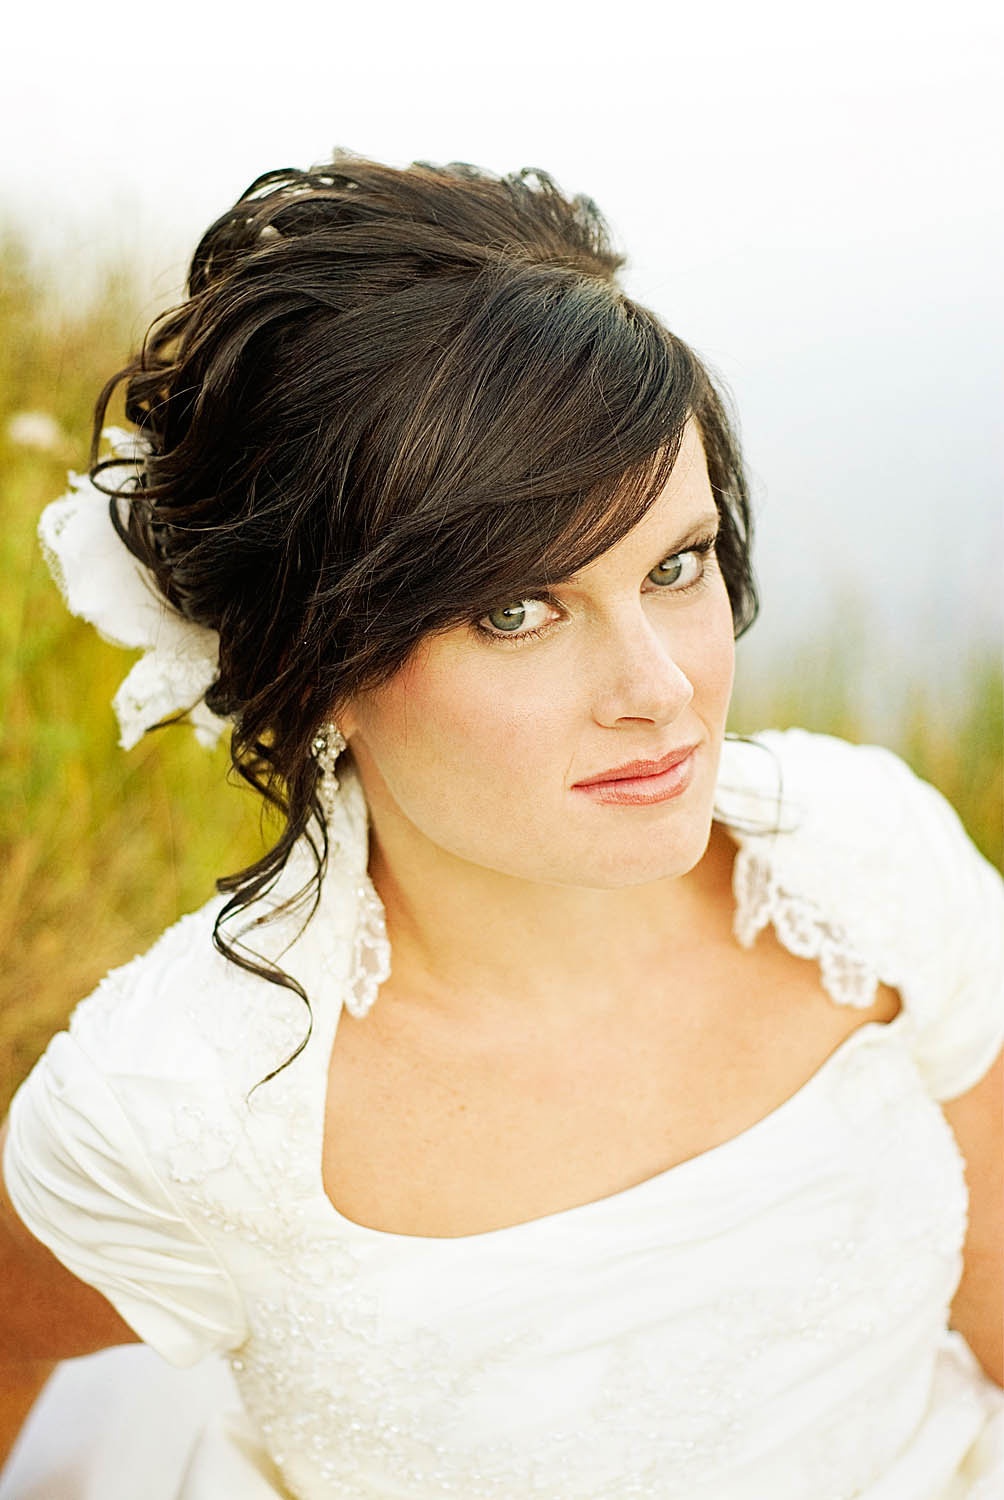 Wedding Hair And Makeup Ct Jonathan Edwards Winery: Hair And Make-up By Steph: How To Incorporate Your Bangs